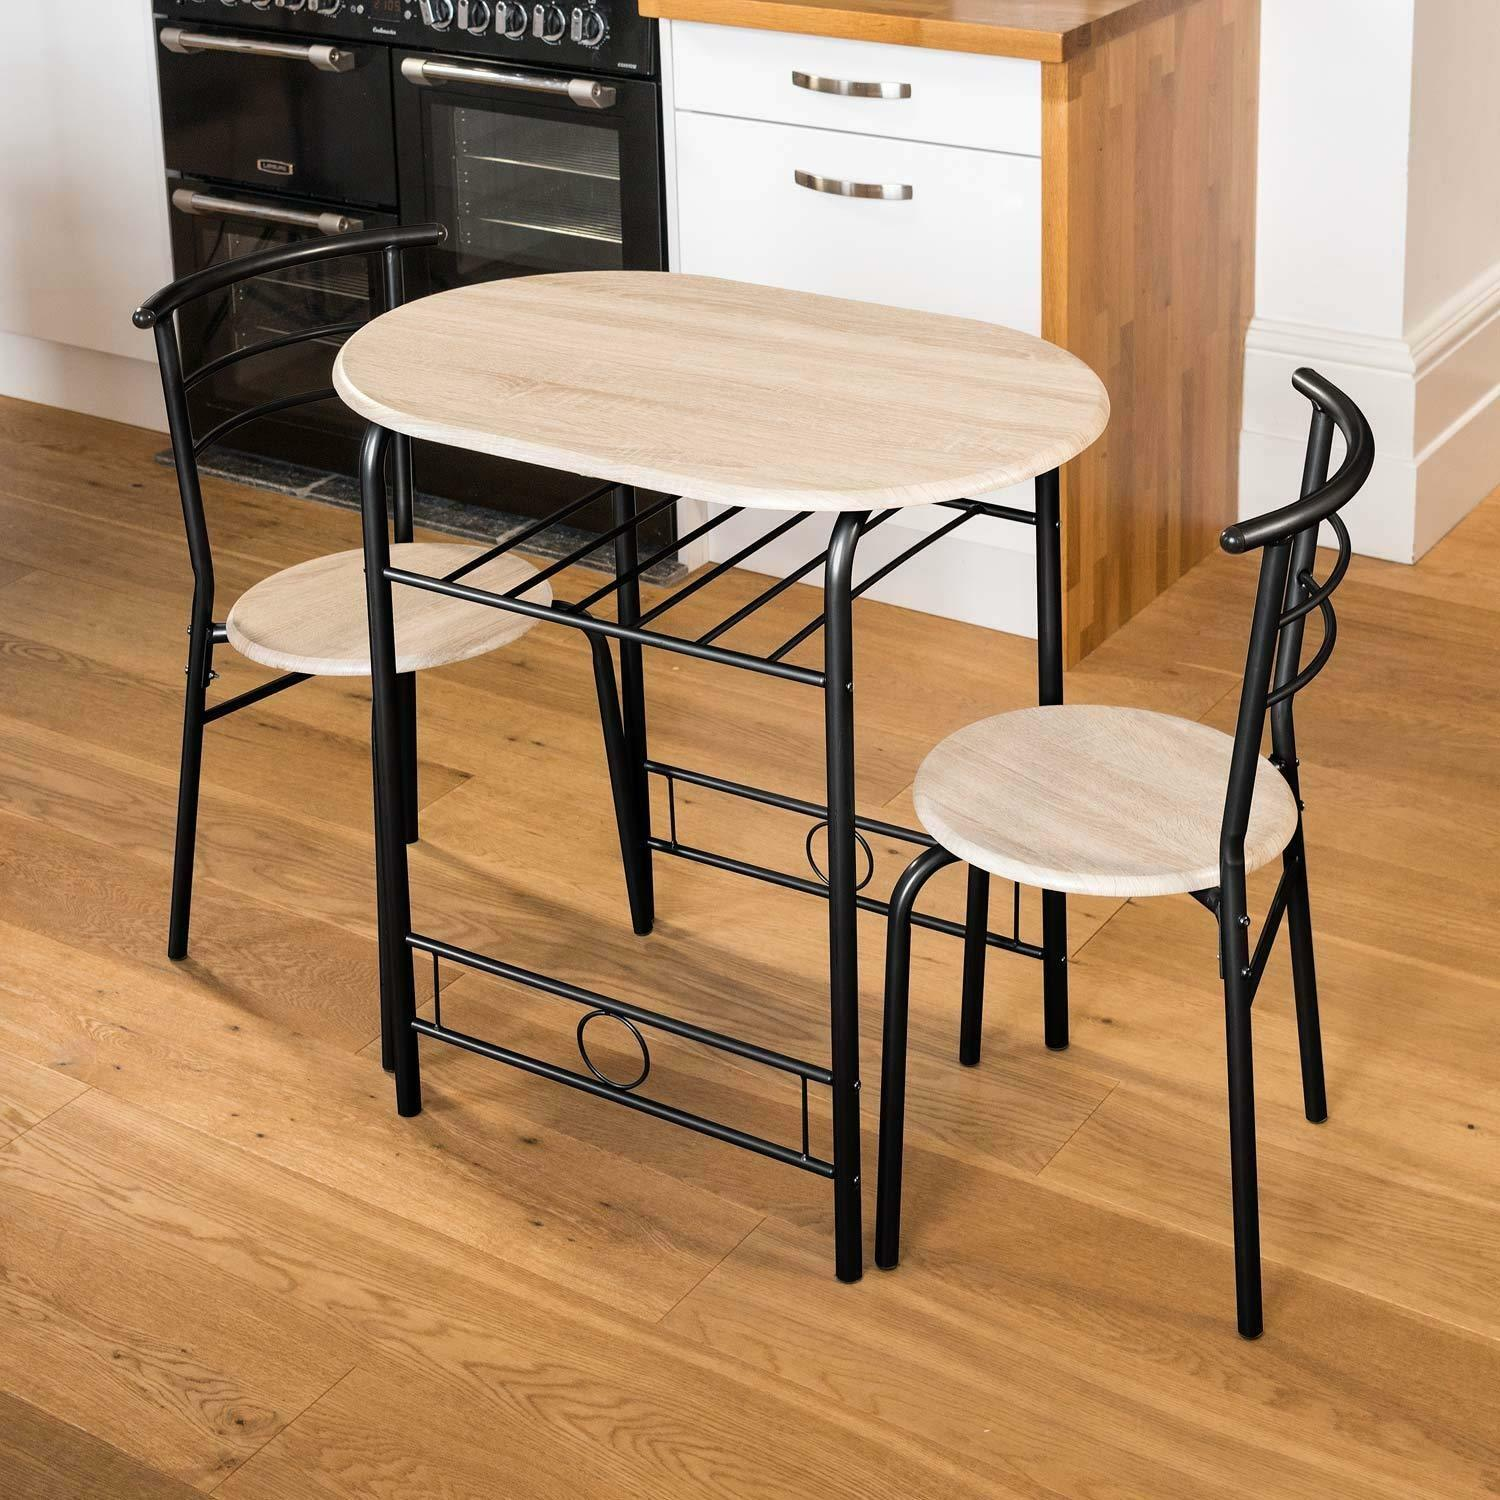 Table Chair Sets 2 Seater Kitchen Table And Chairs Dining Breakfast Compact Space Saver Table Set Home Furniture Diy Tallergrafico Com Uy